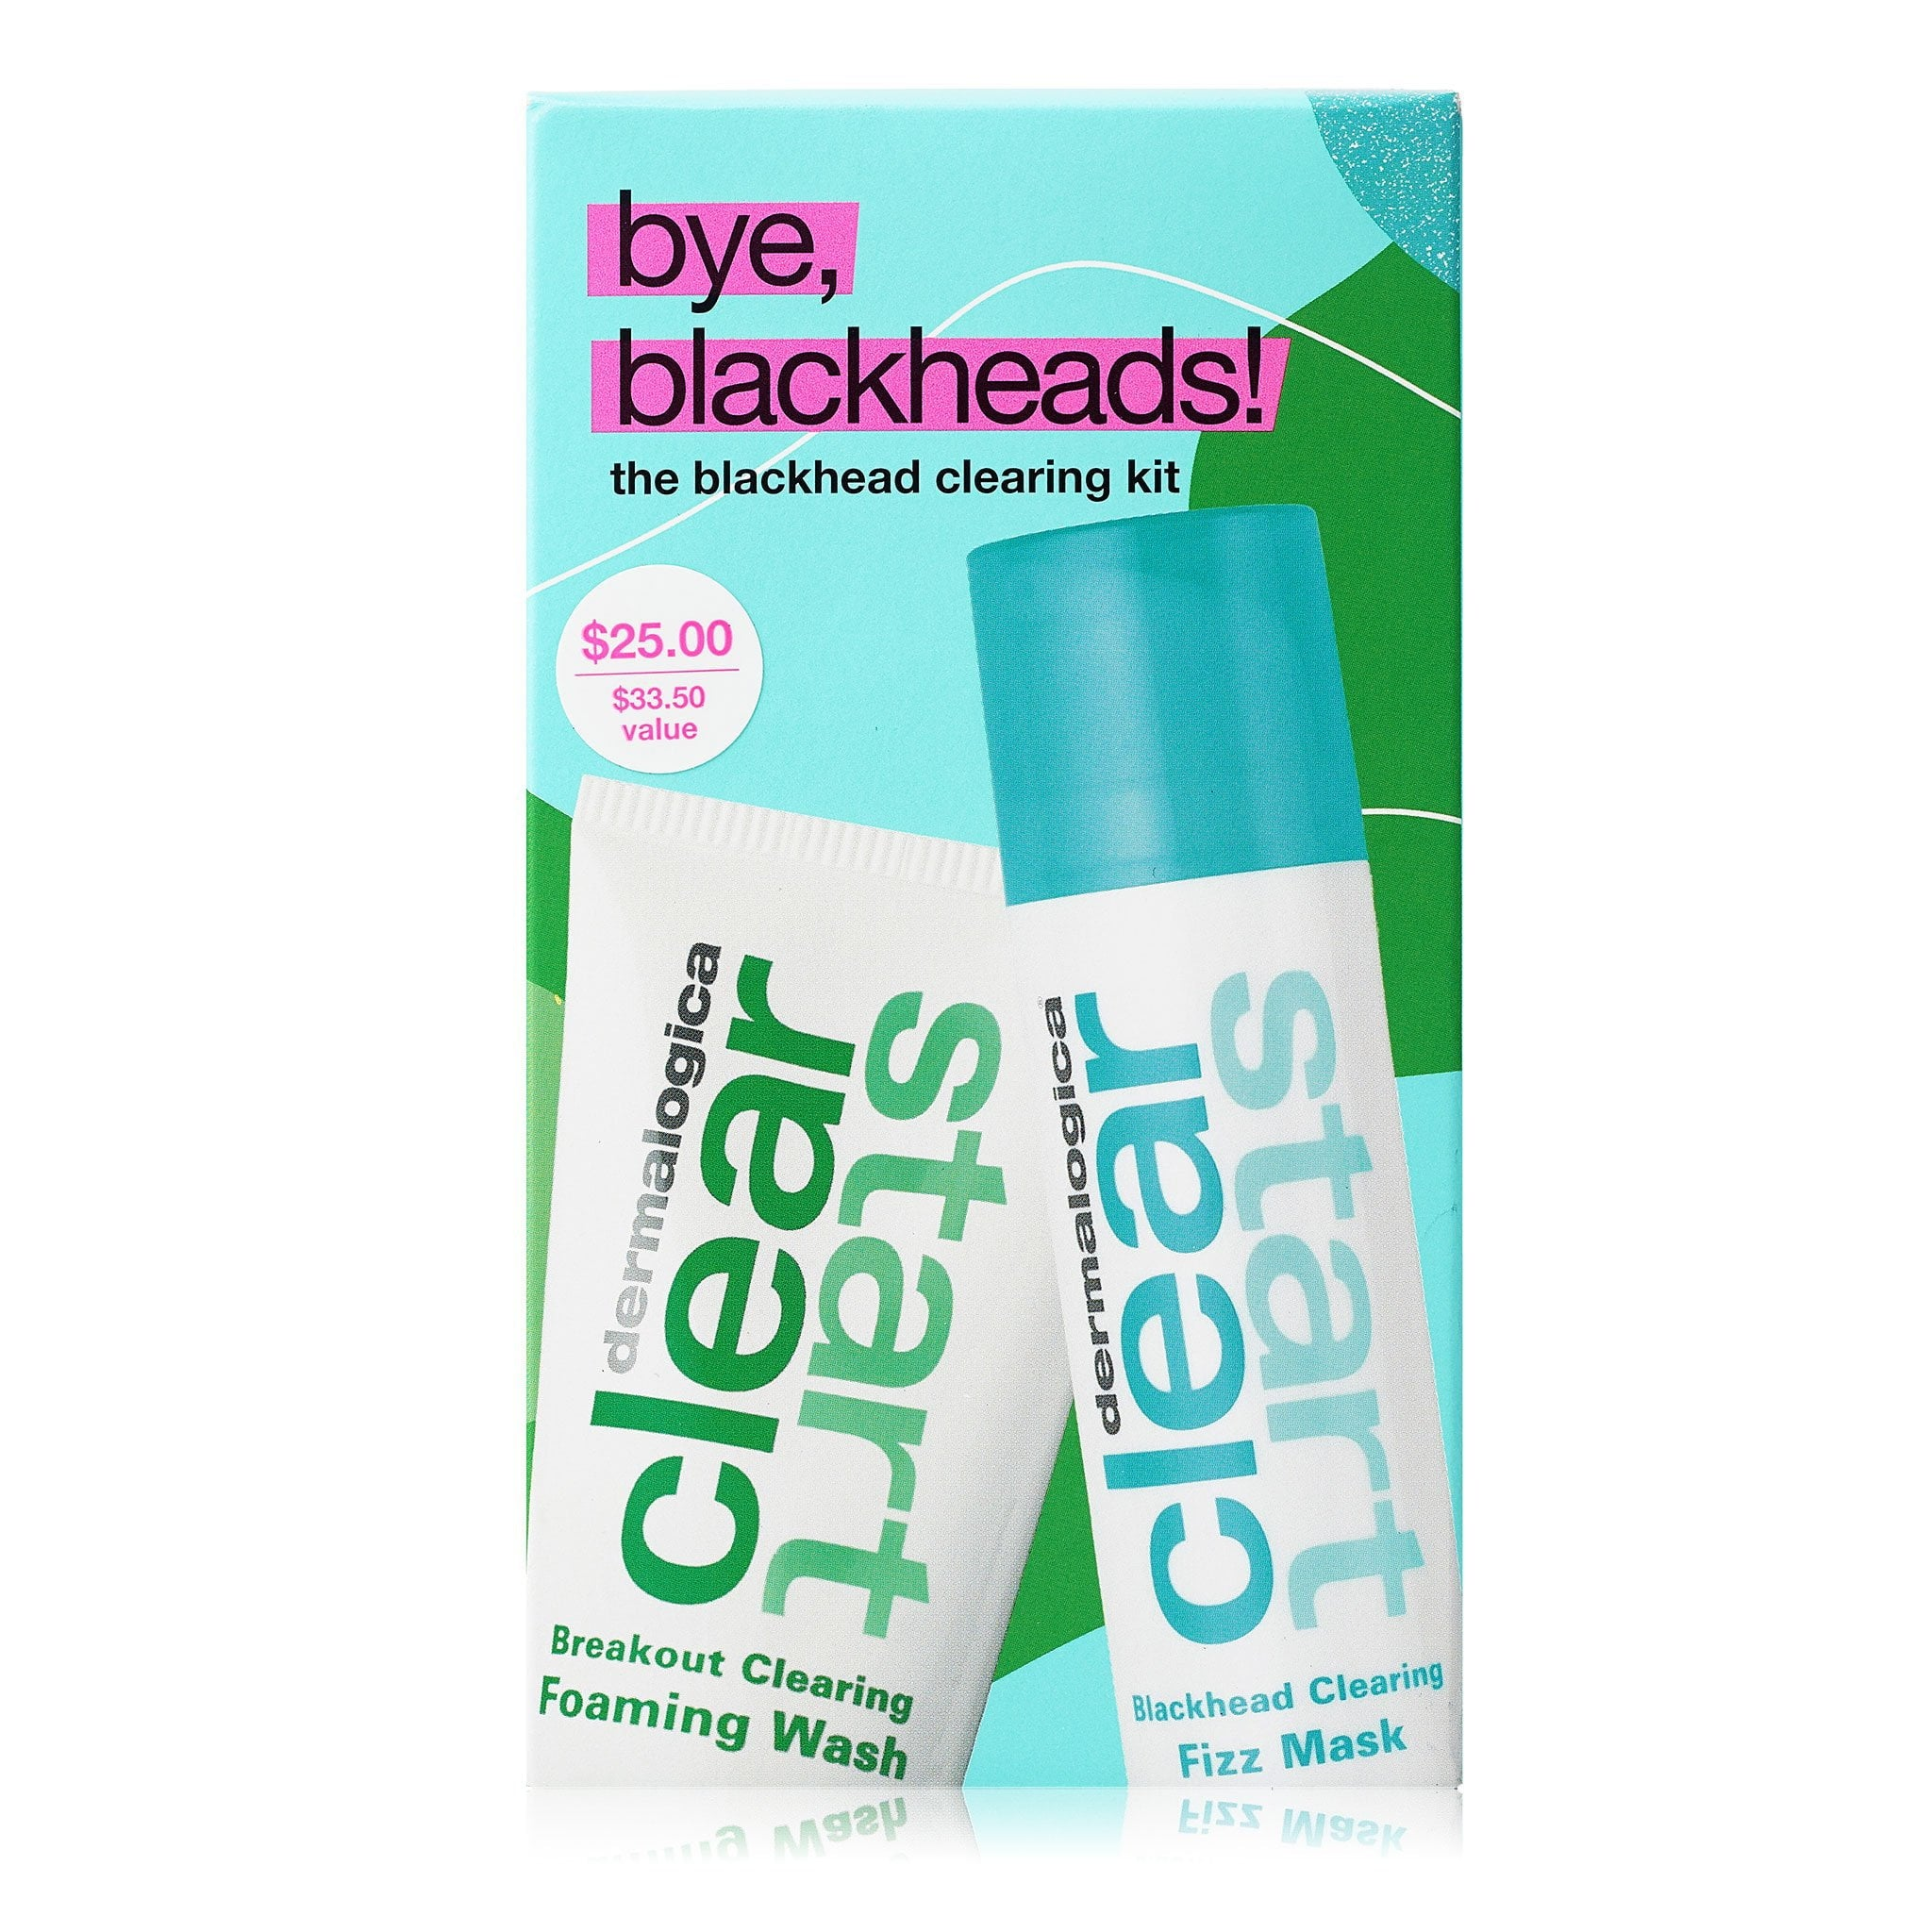 bye! blackheads kit